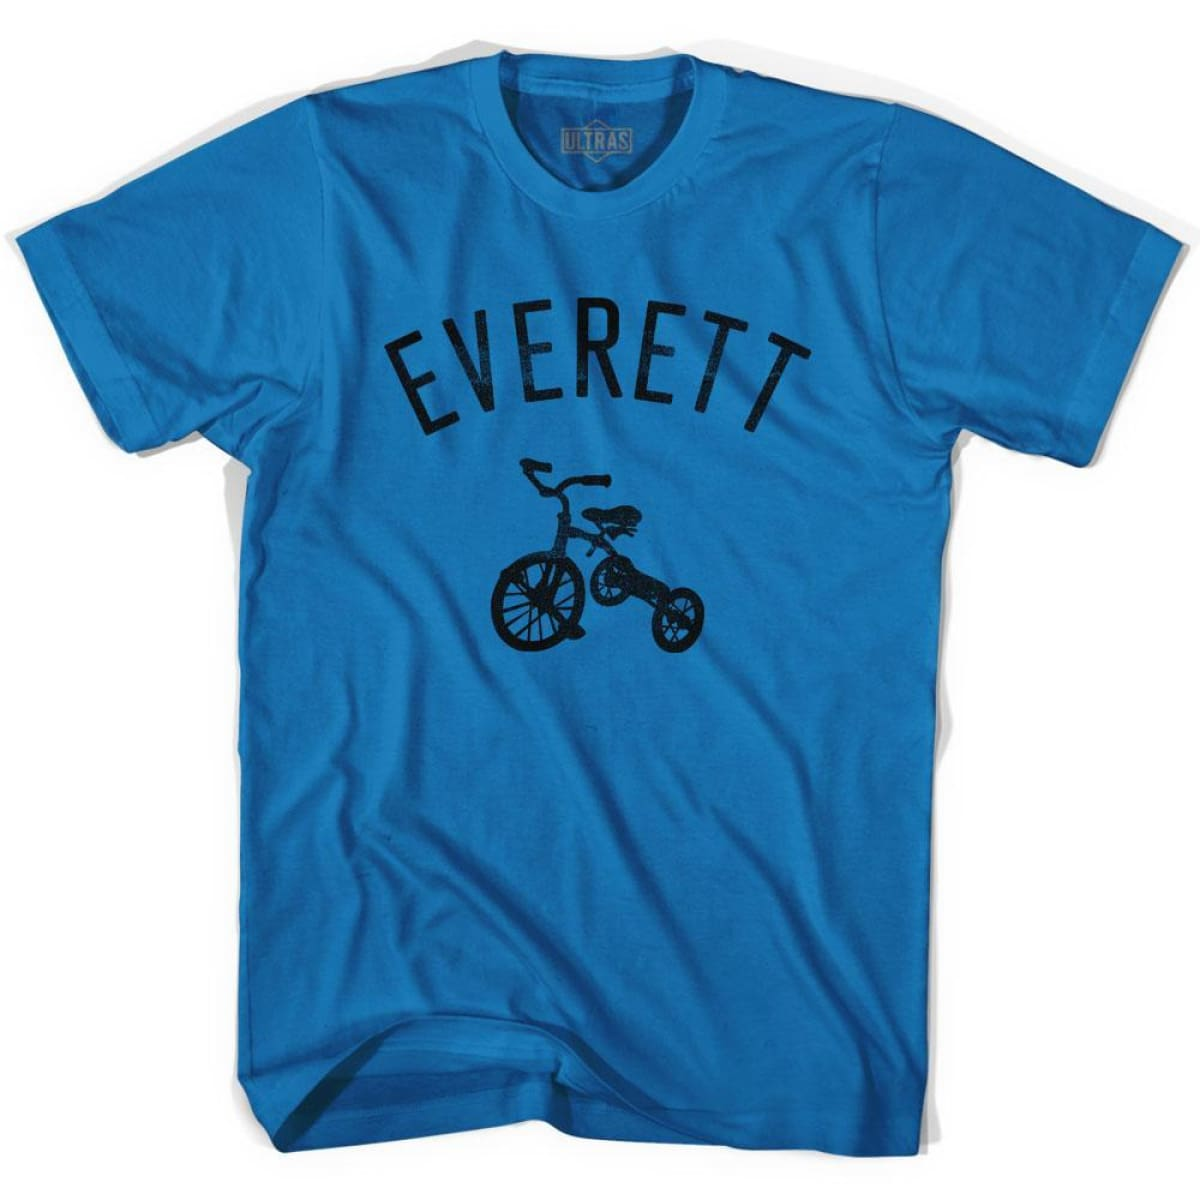 Everett City Tricycle Adult Cotton T-shirt - Tricycle City